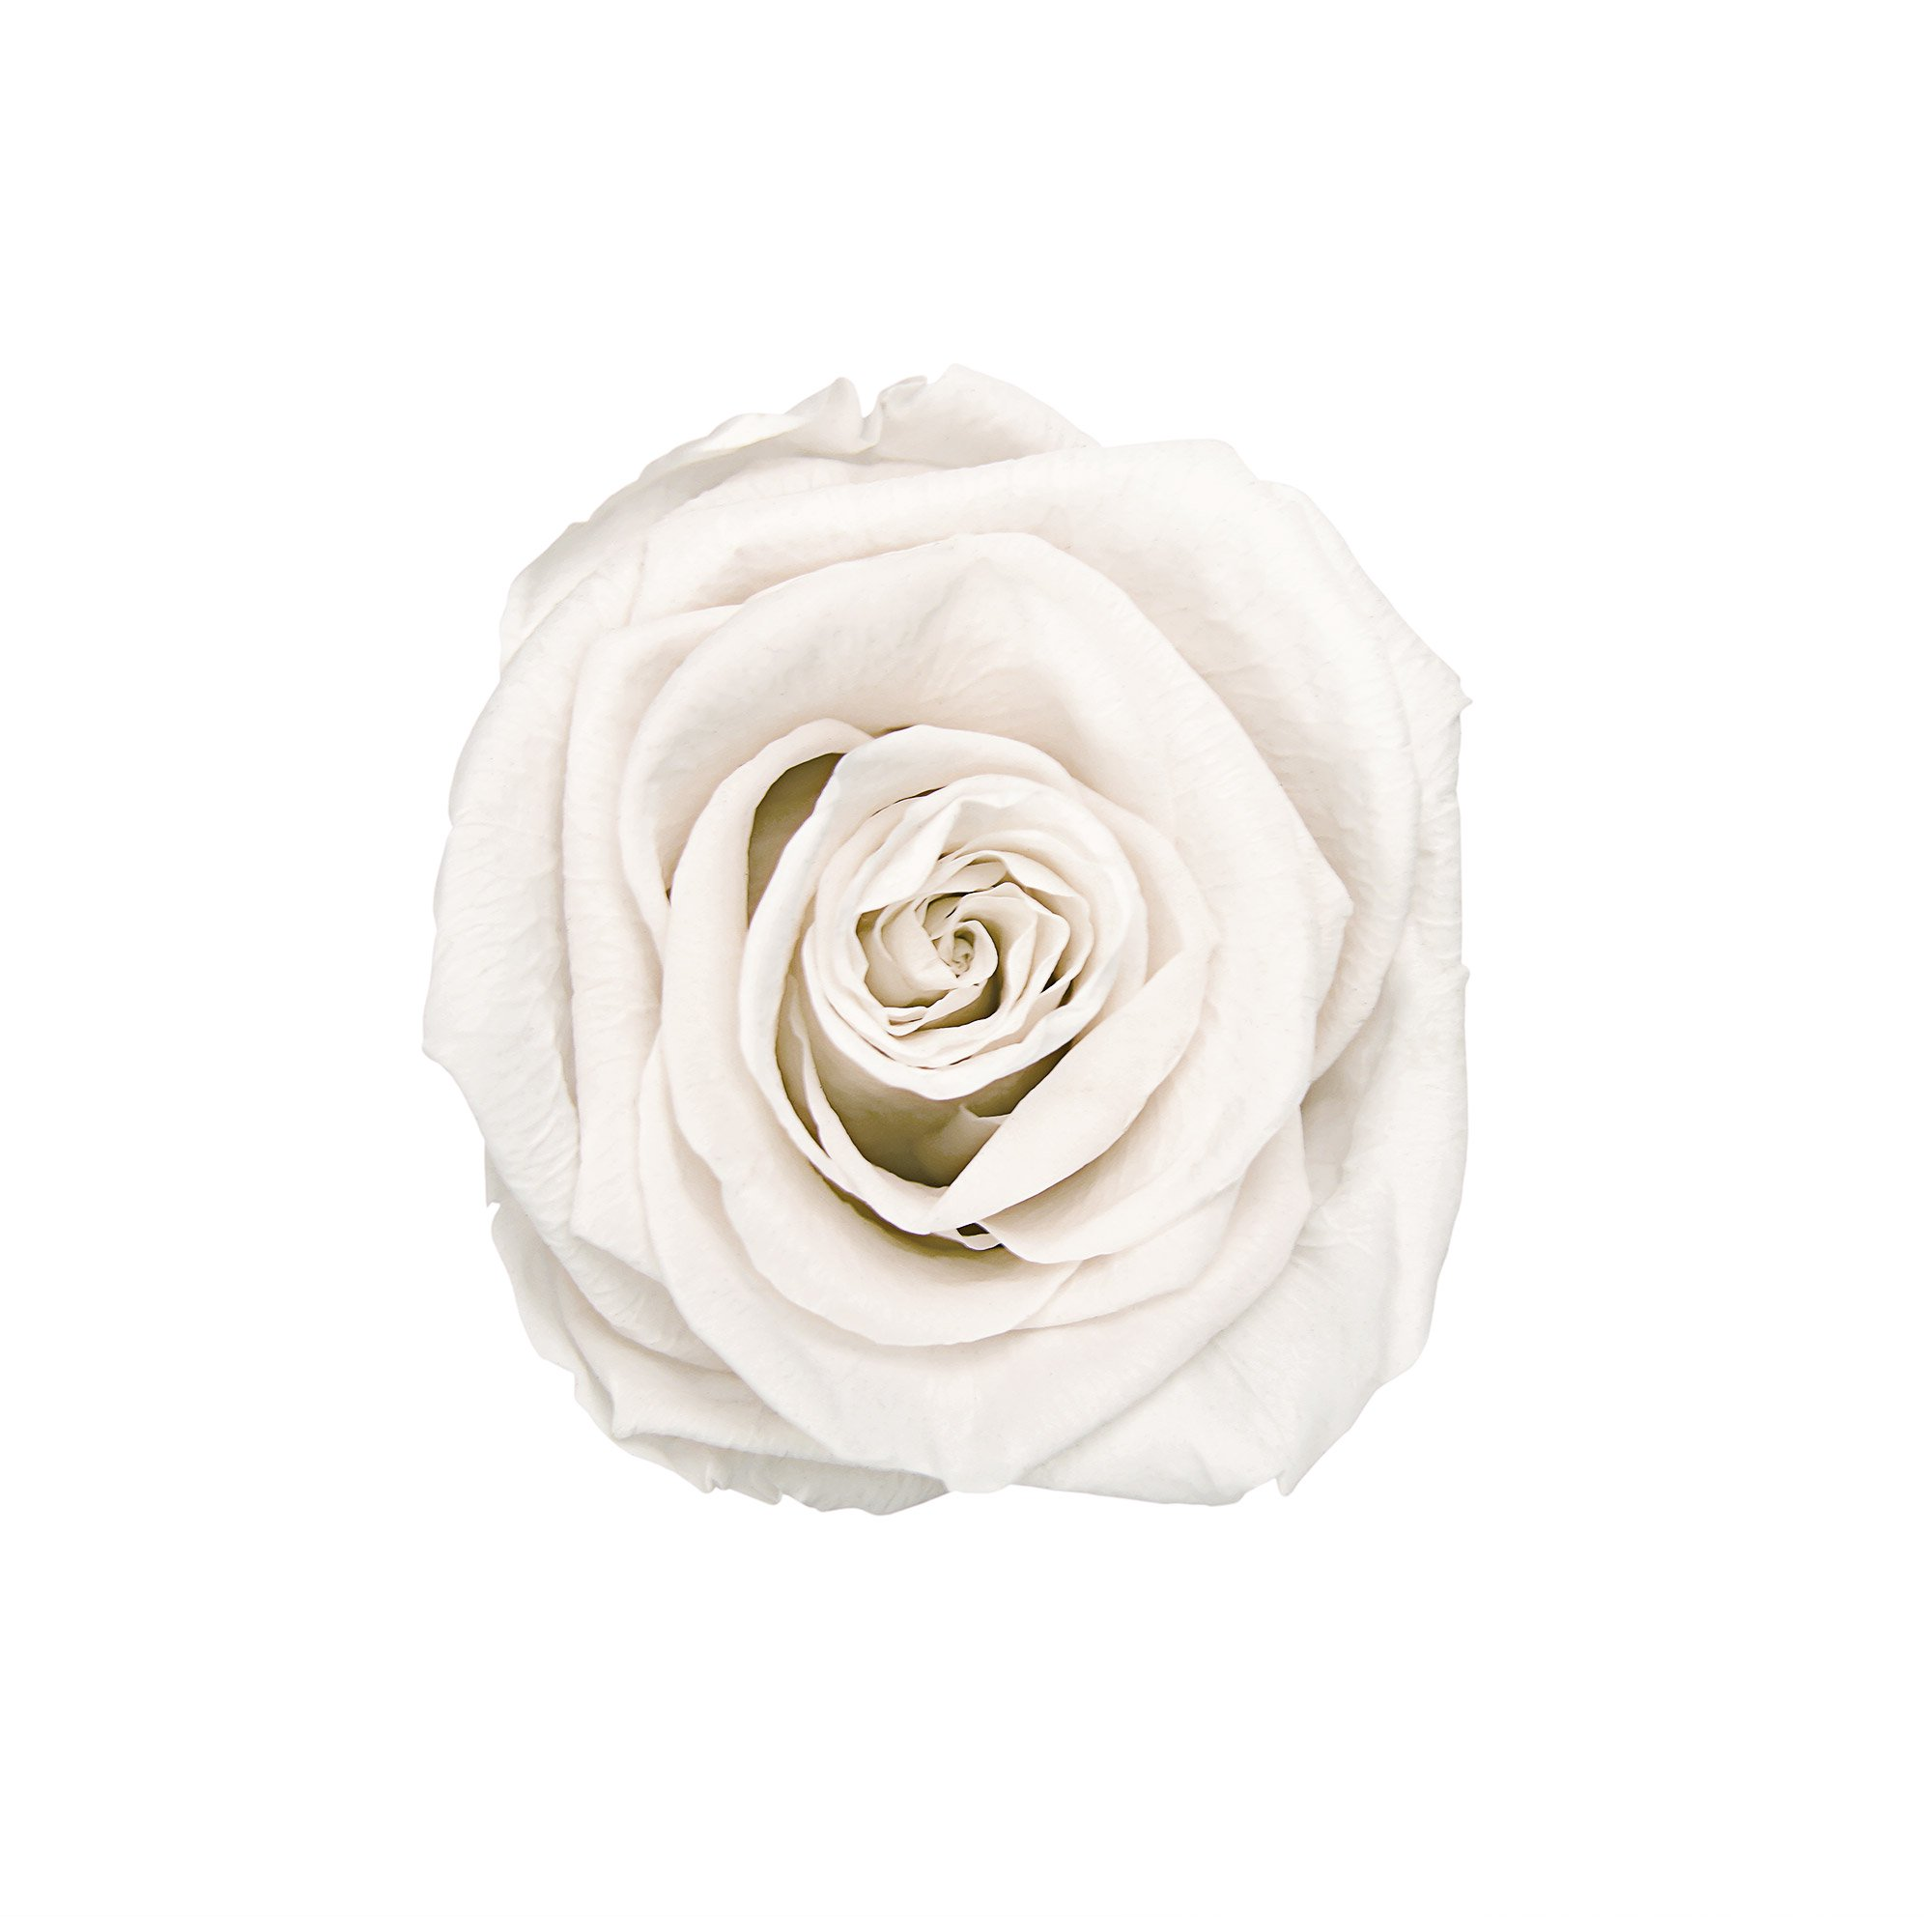 MINI_Round_Whiterose_White